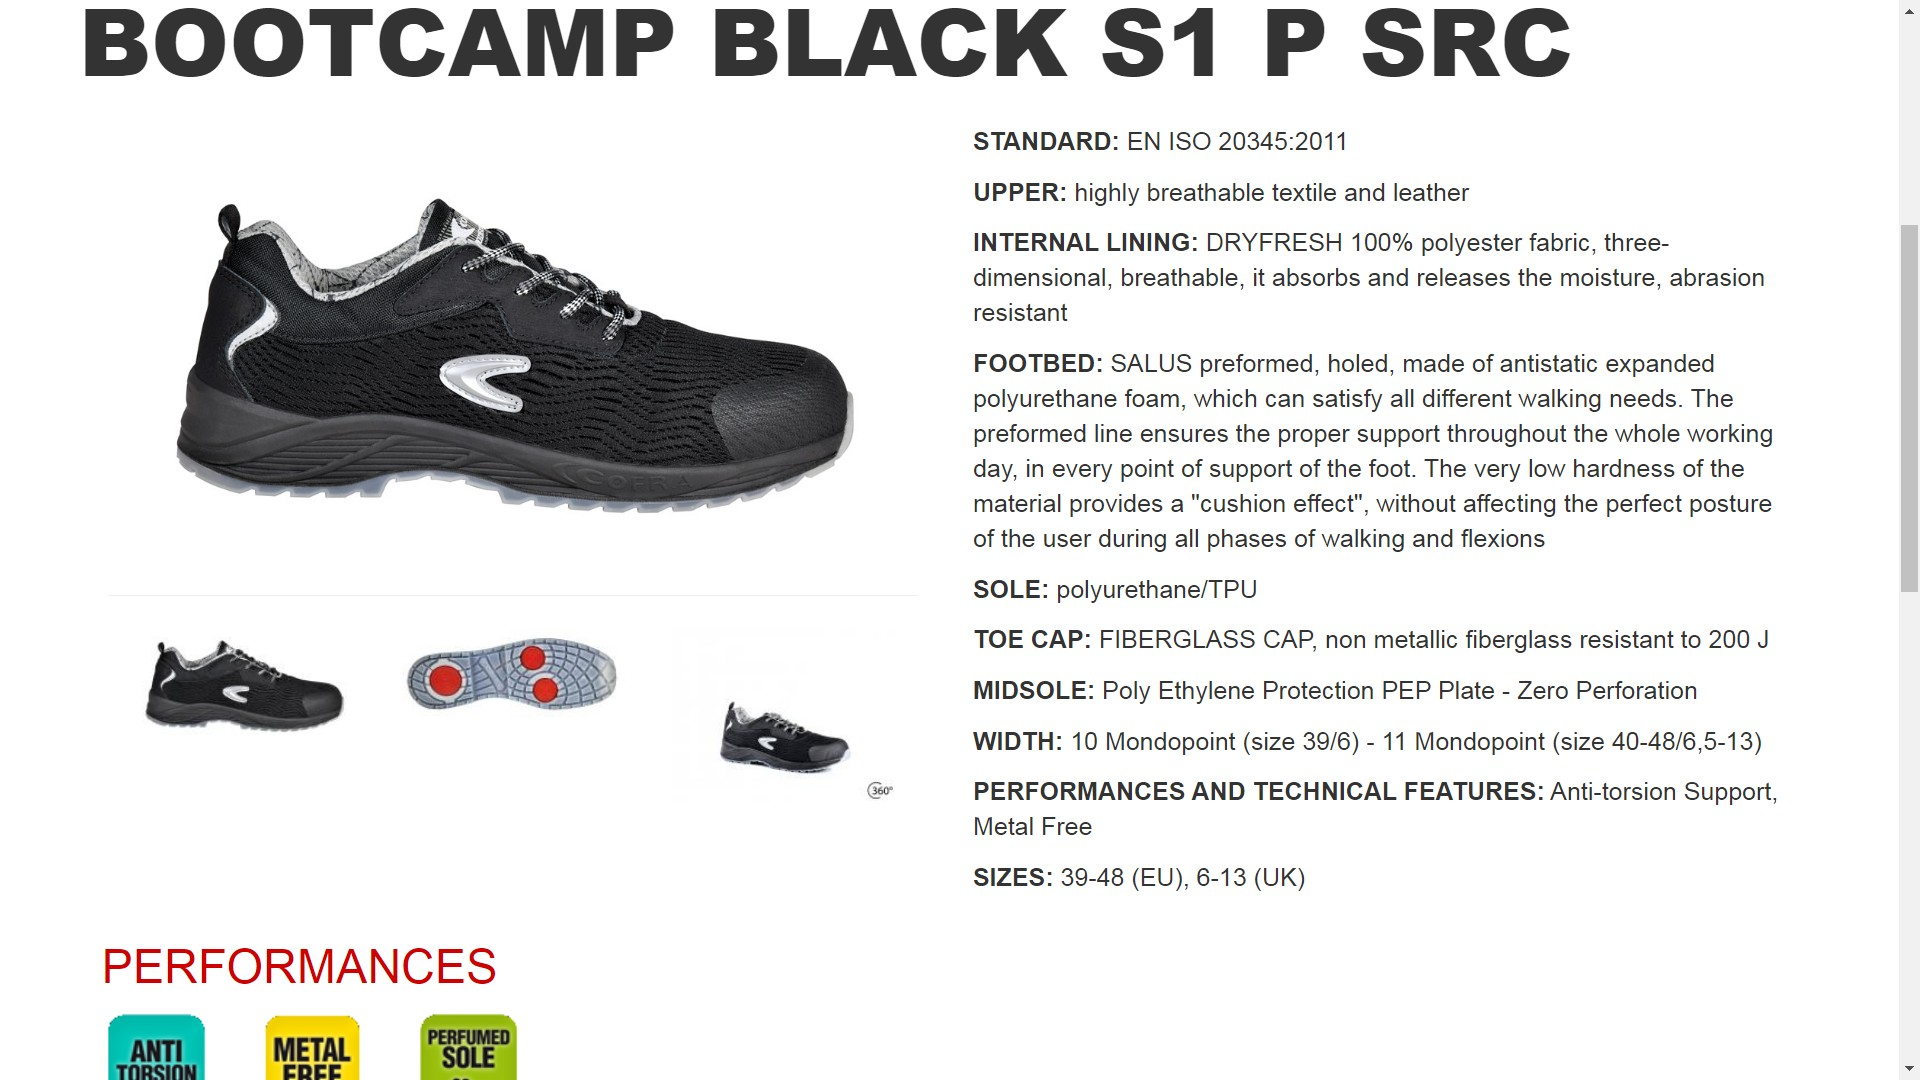 200117  ZAPATO BOOTCAMP BLACK S1 P SRC 39-48 (EU), 6-13 (UK)